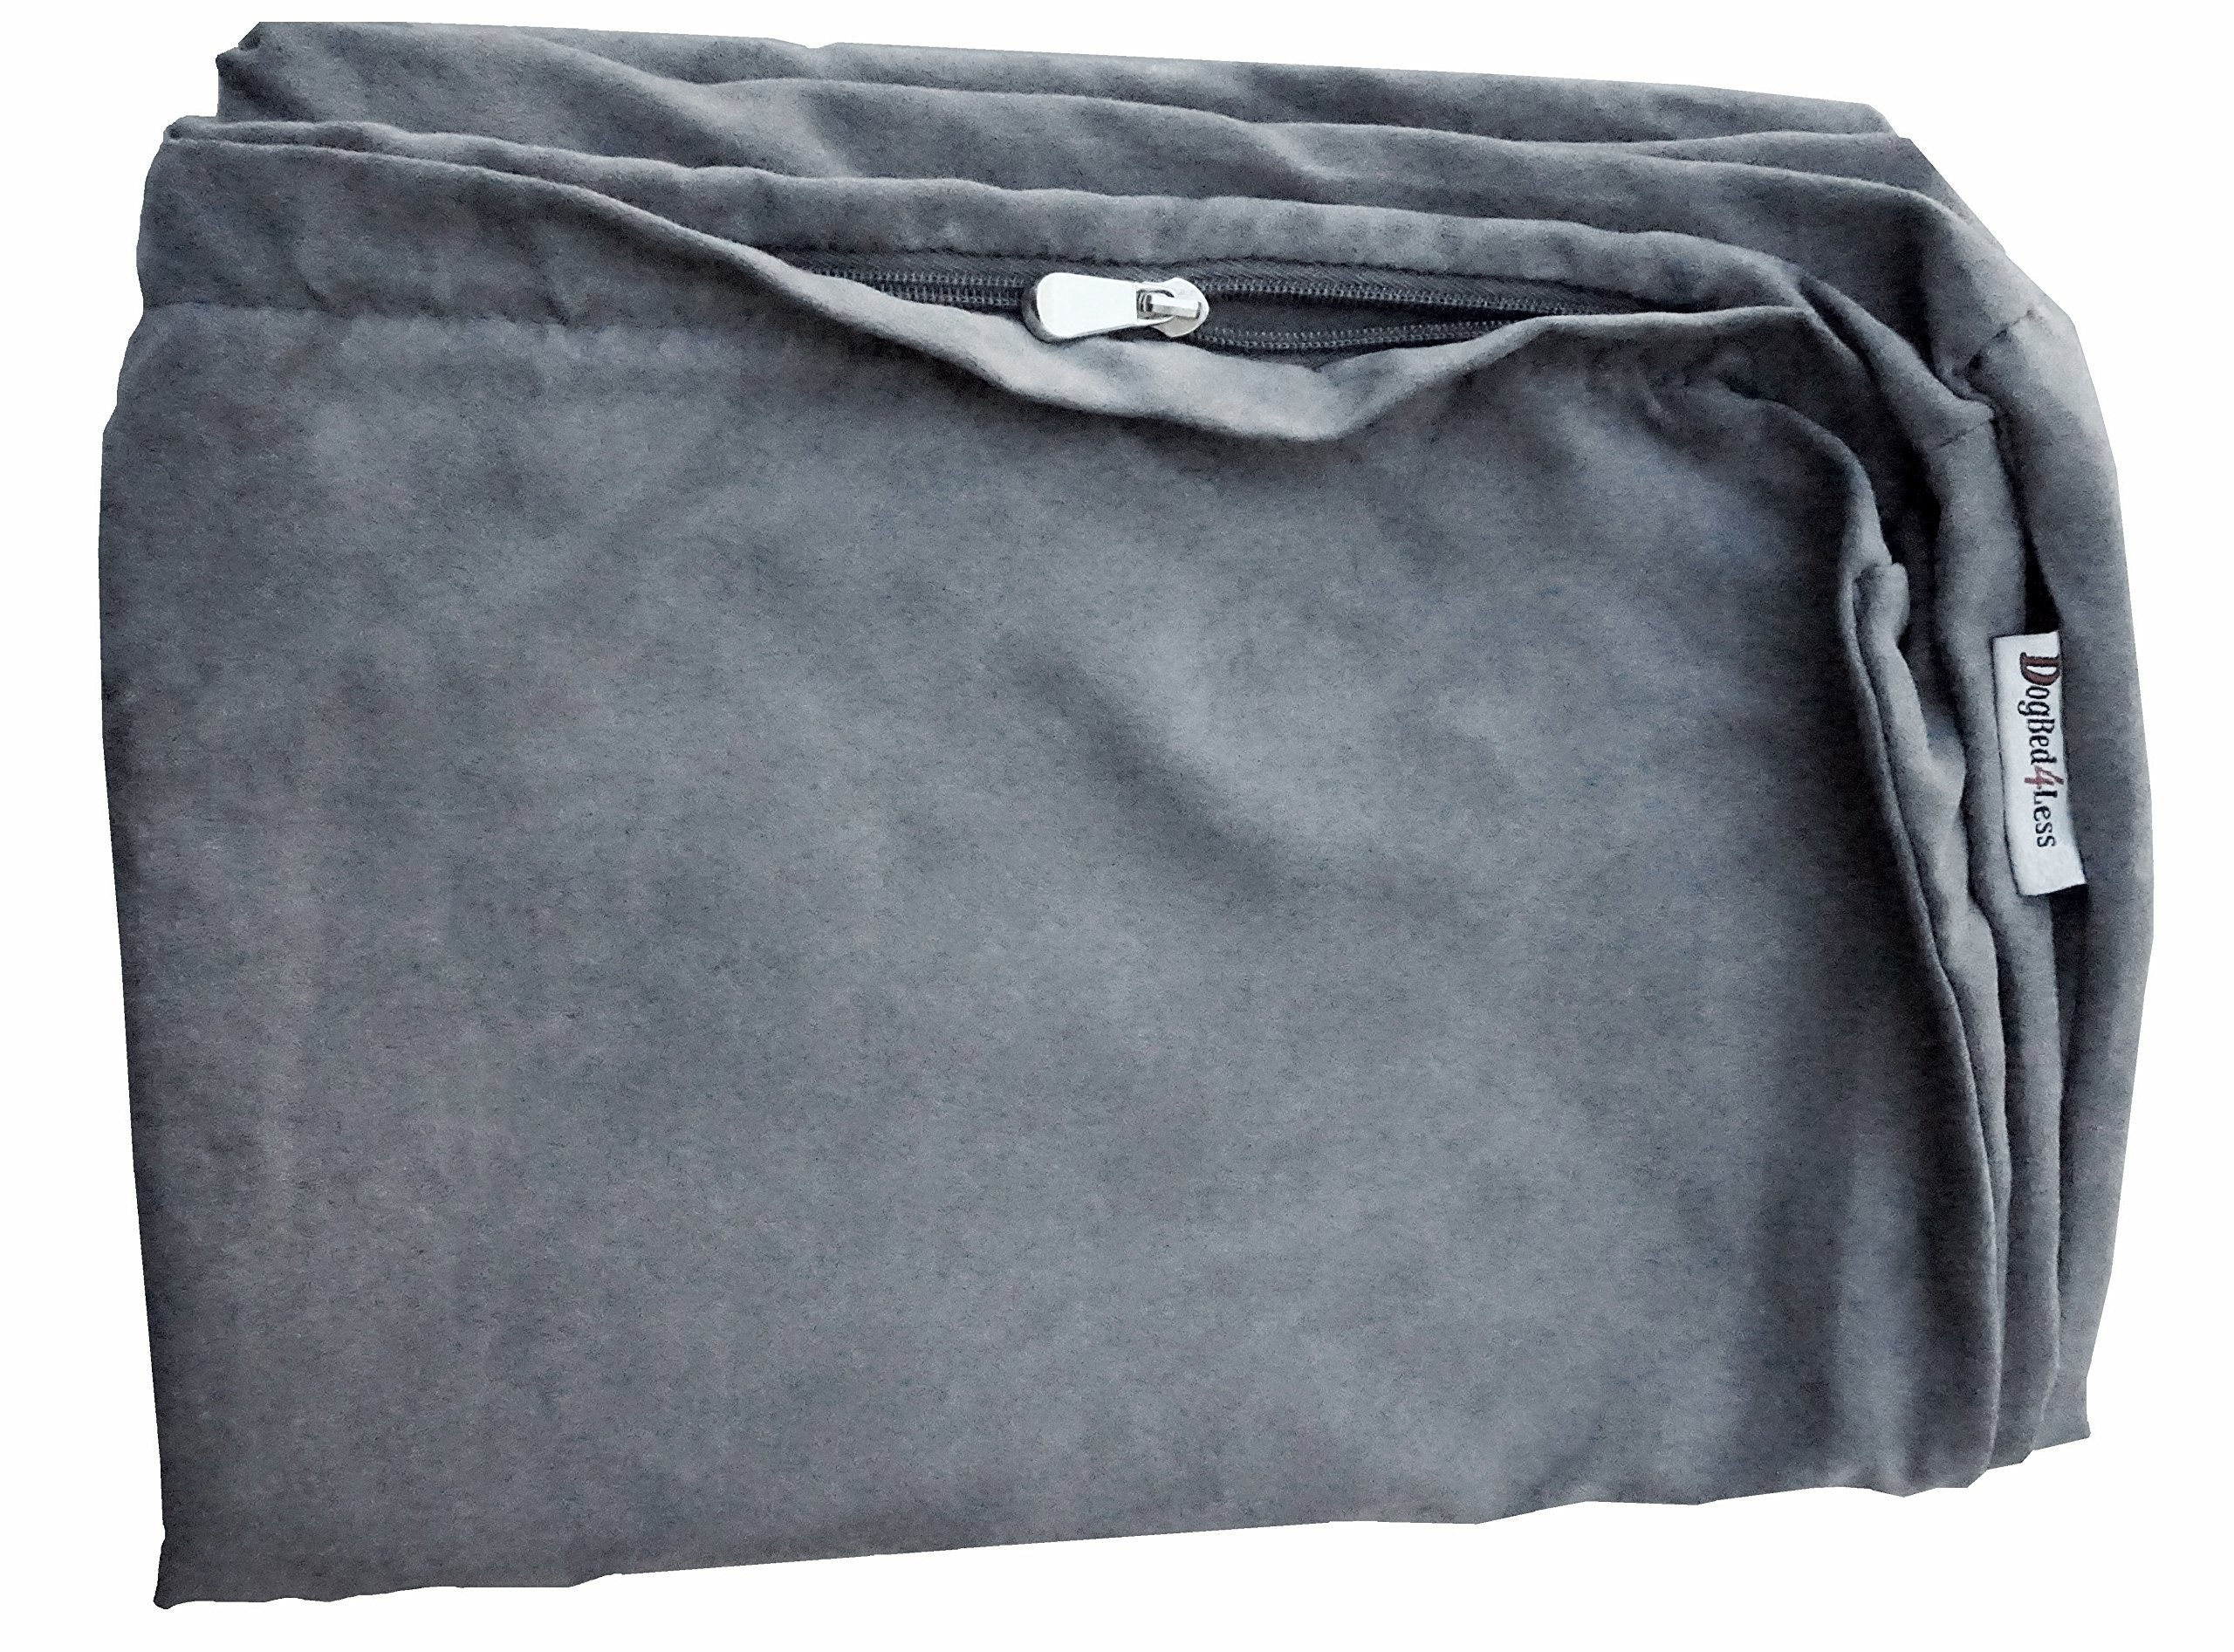 Dogbed4less 40X35X4 Inches XL Size : Suede fabric External Replacement Cover in Grey Color with zipper liner for Dog Pet Bed Pillow or pad - Replacement cover only